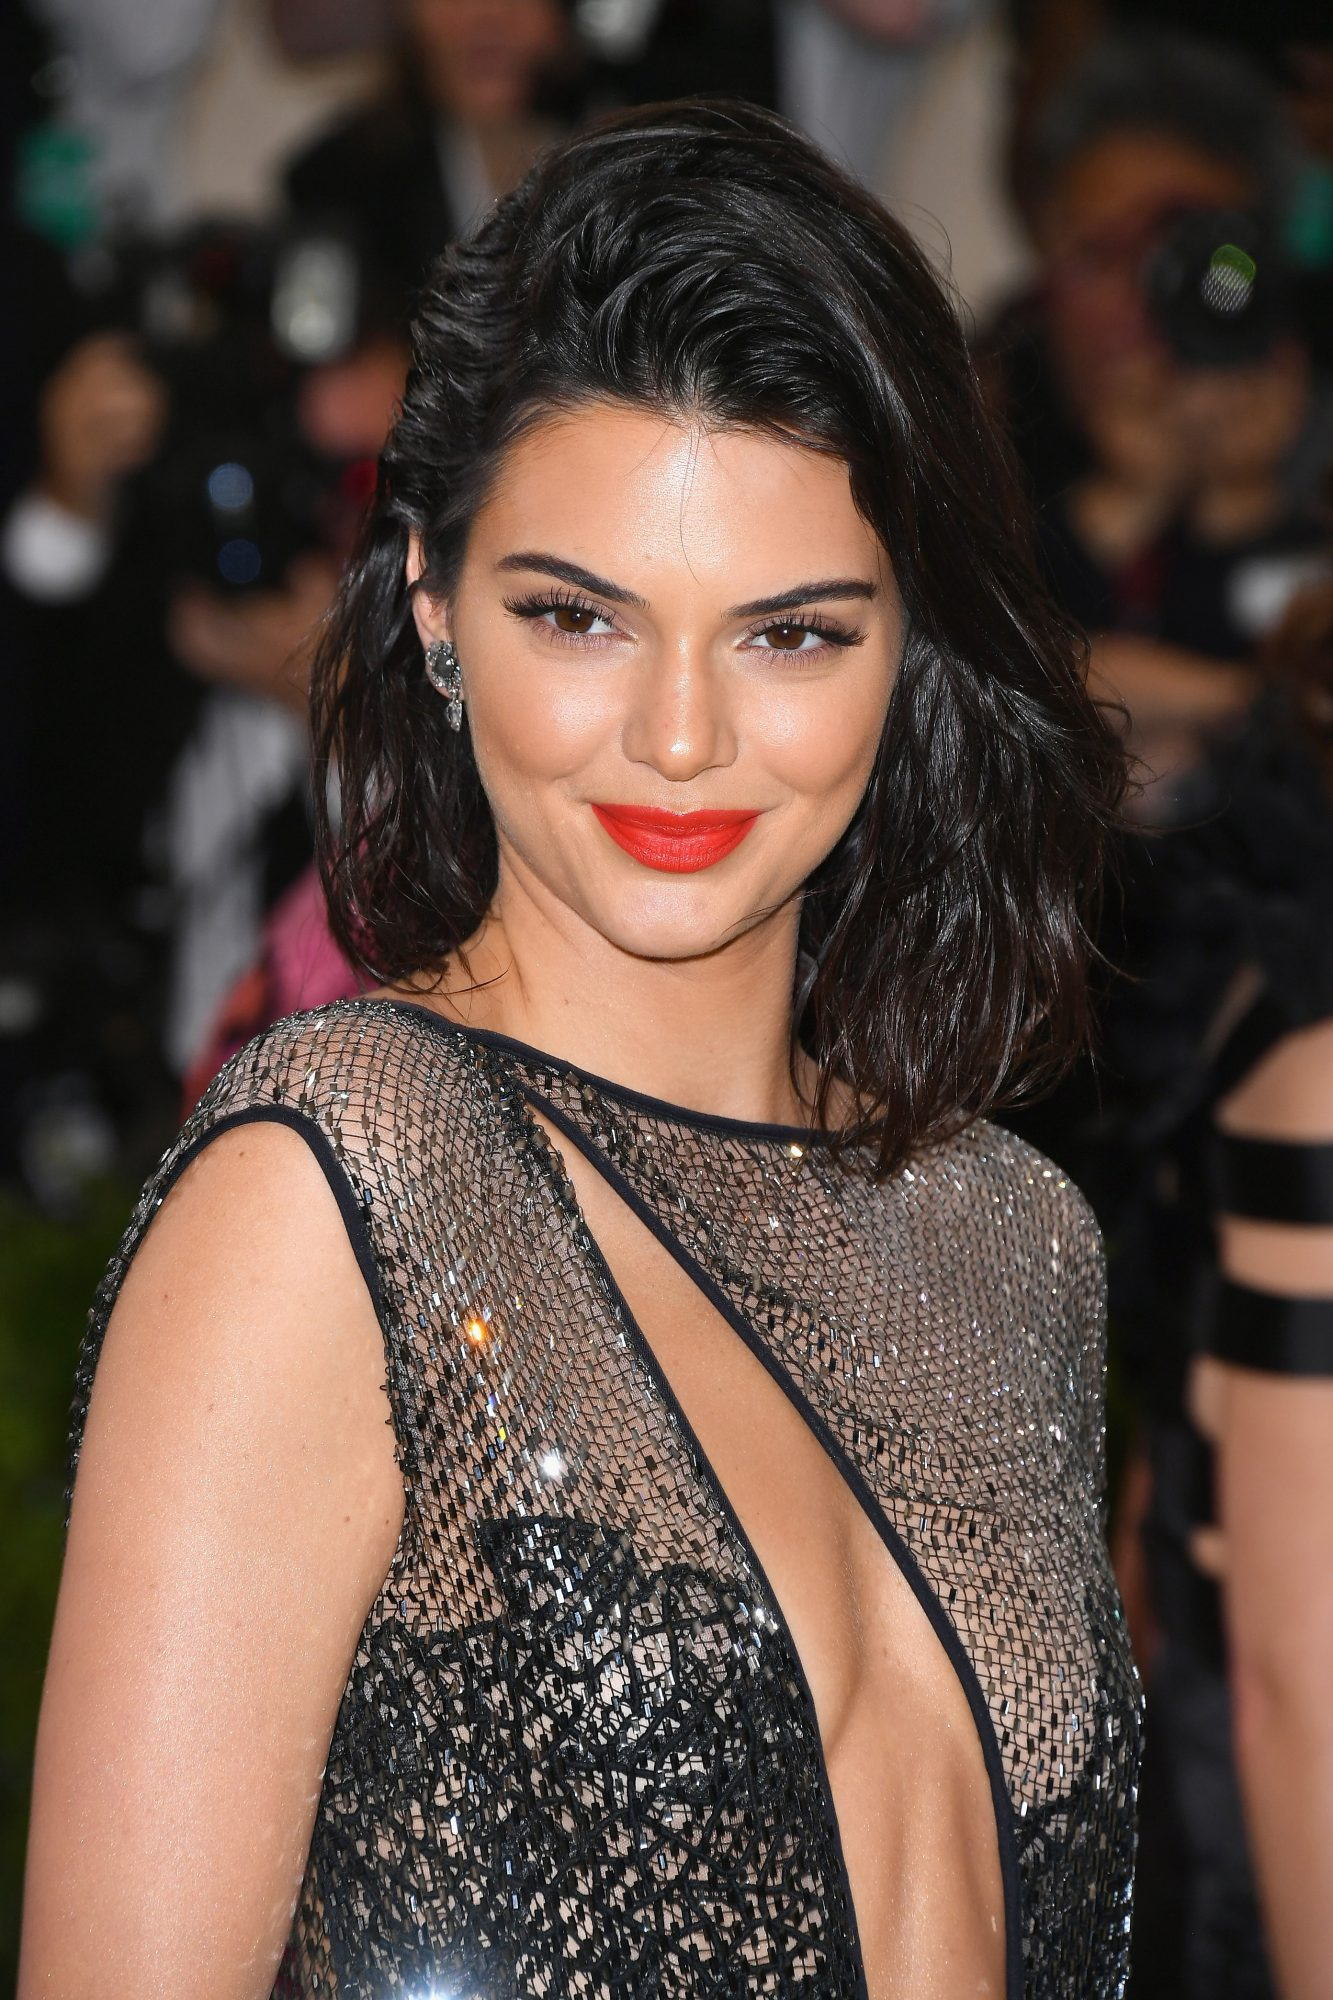 Get Ready: A Kendall Jenner Jewelry Collaboration Is in the Works